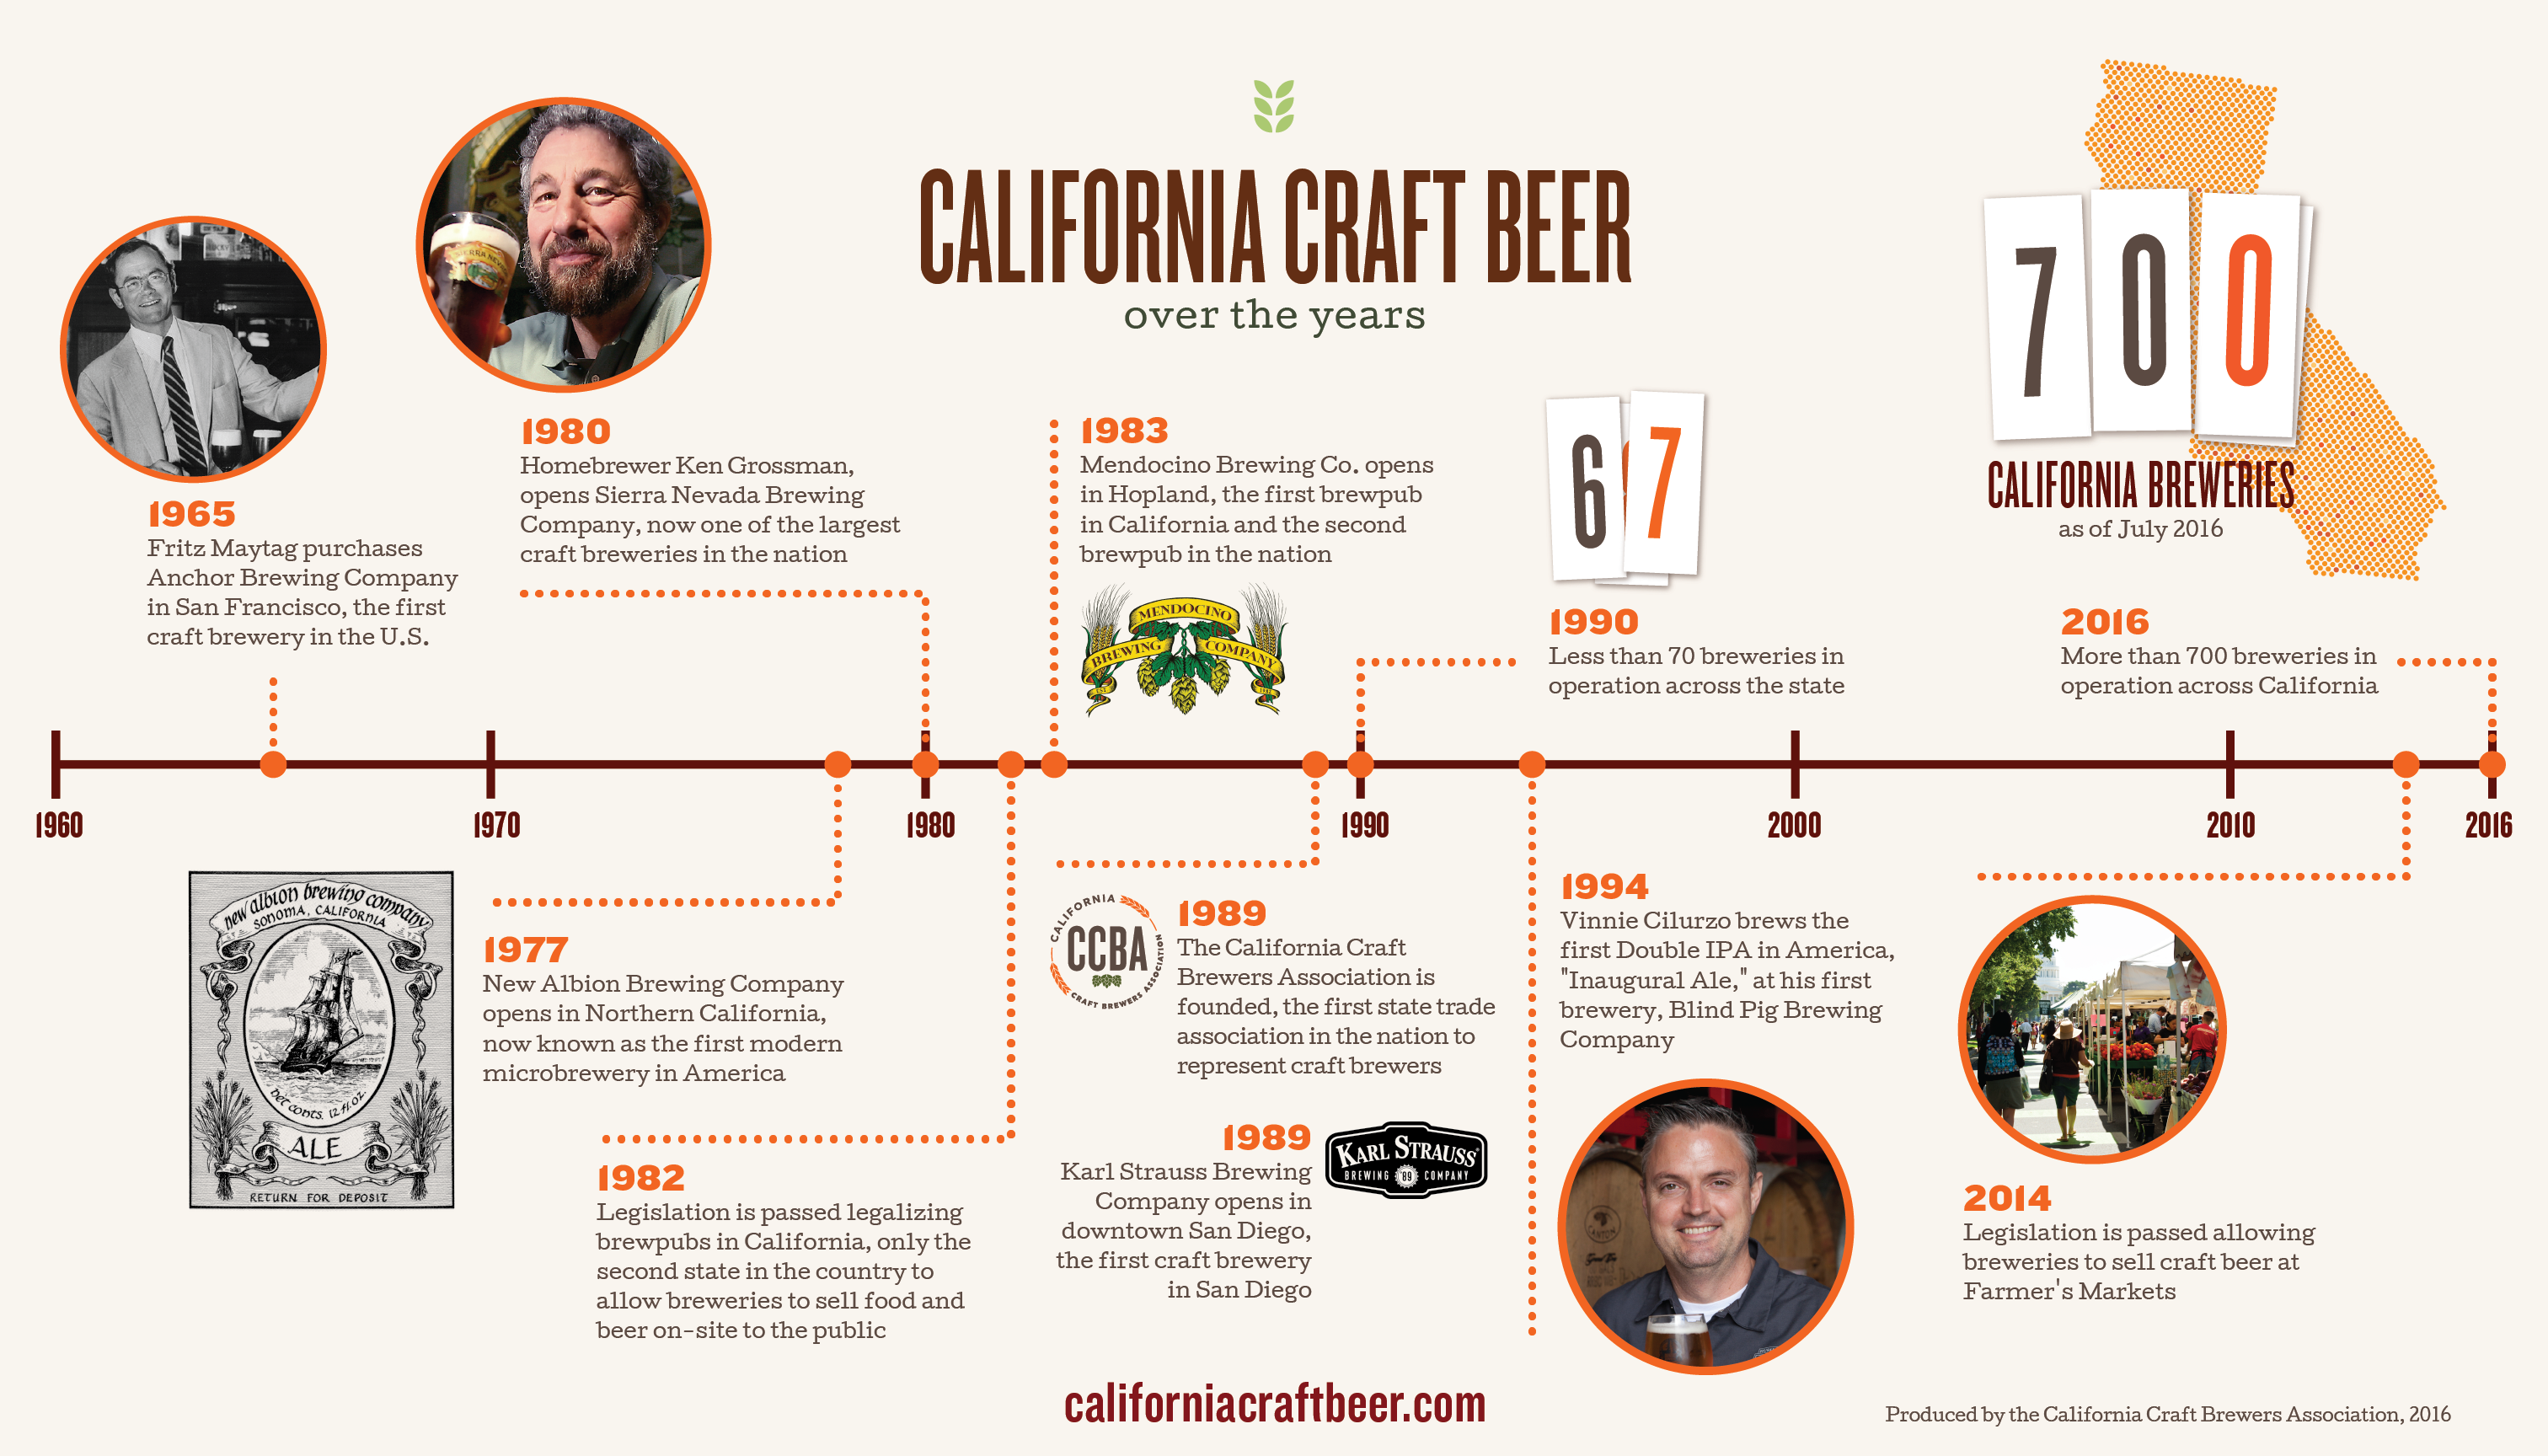 California Craft Beer Over the Years